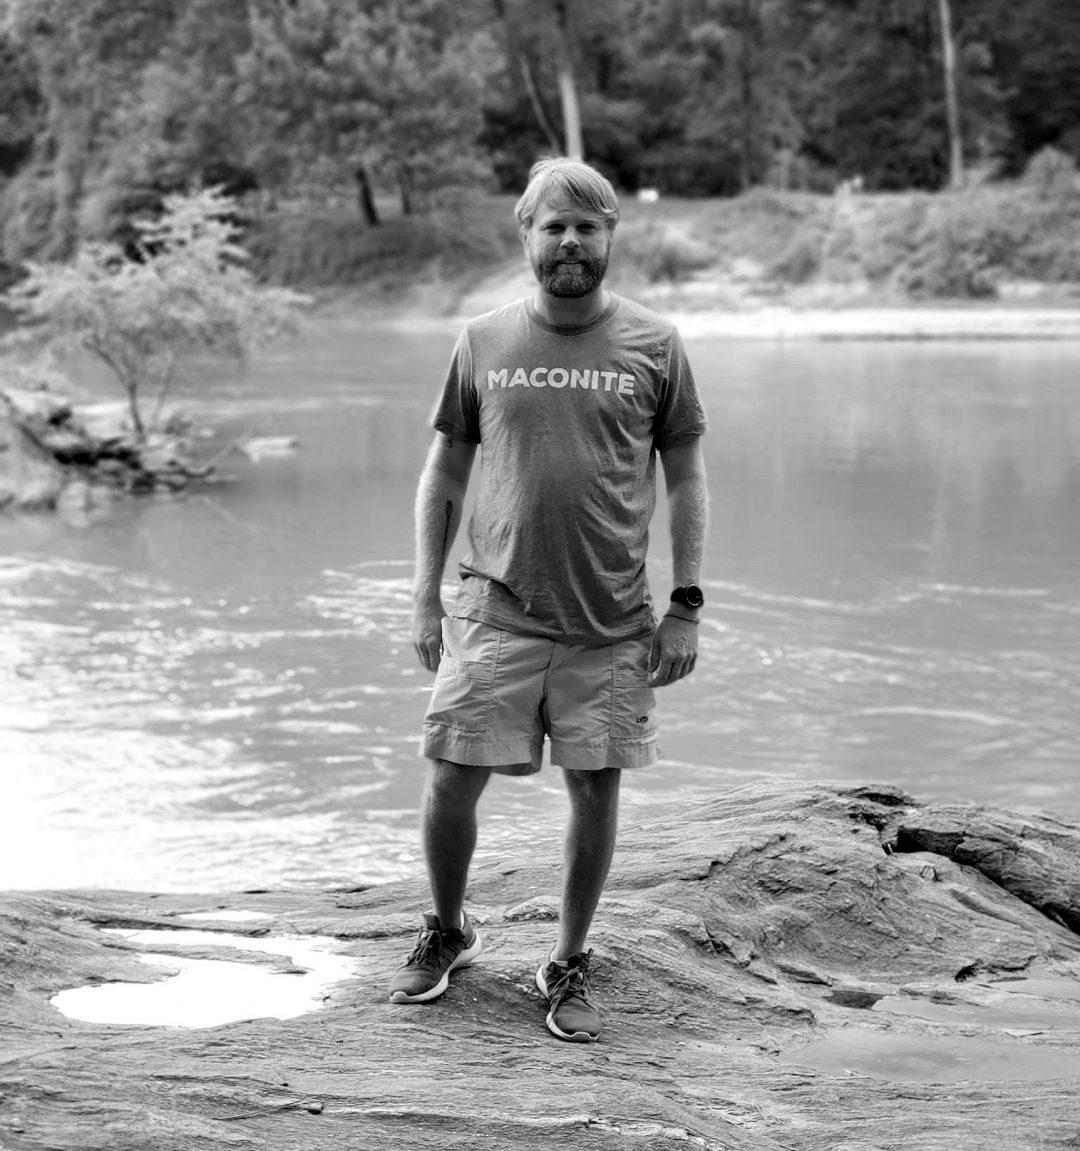 Amerson Rock founder sporting one of their earliest designs, the Maconite t-shirt, on one of the rocks at Amerson Park